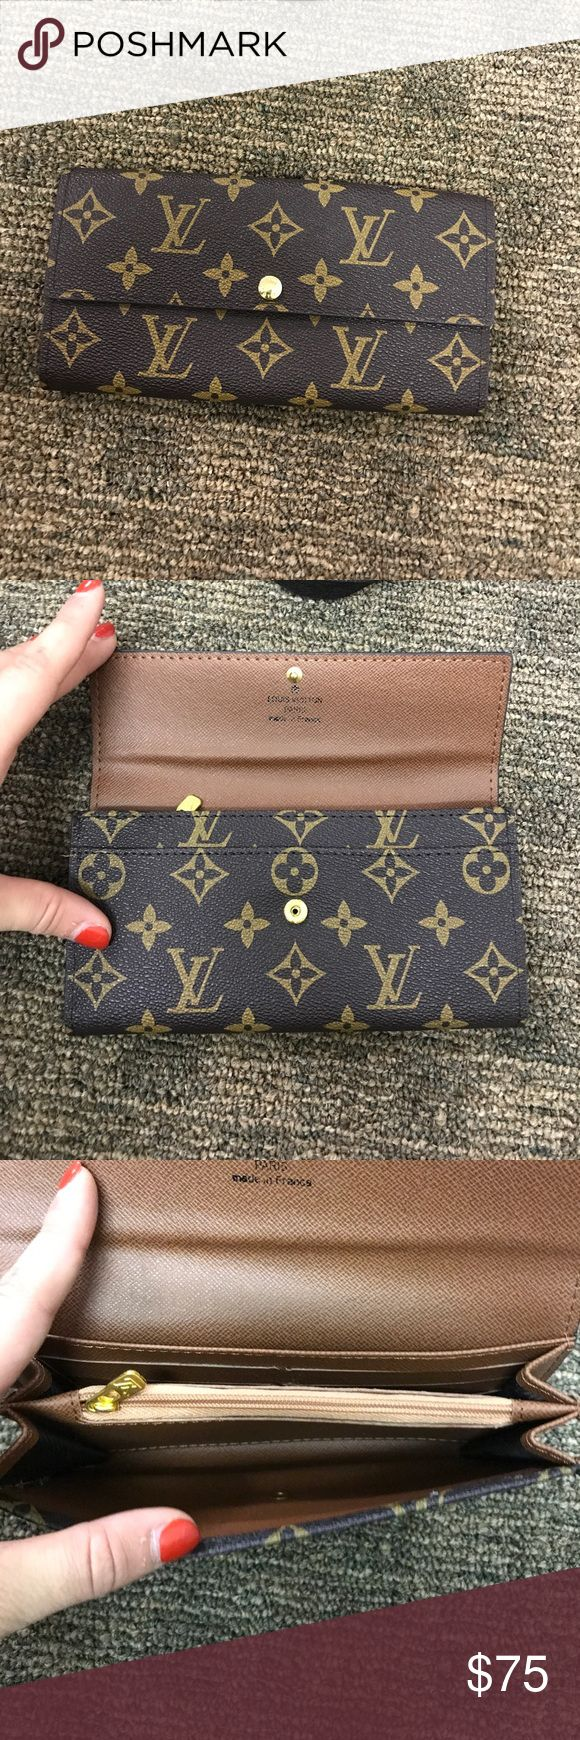 Louis Vuitton wallet Price reflect. There are 6 credit card slots. The last bottom slots shown in picture a ripped hut can still hold cards fine. Please use offer button for offers Louis Vuitton Bags Wallets